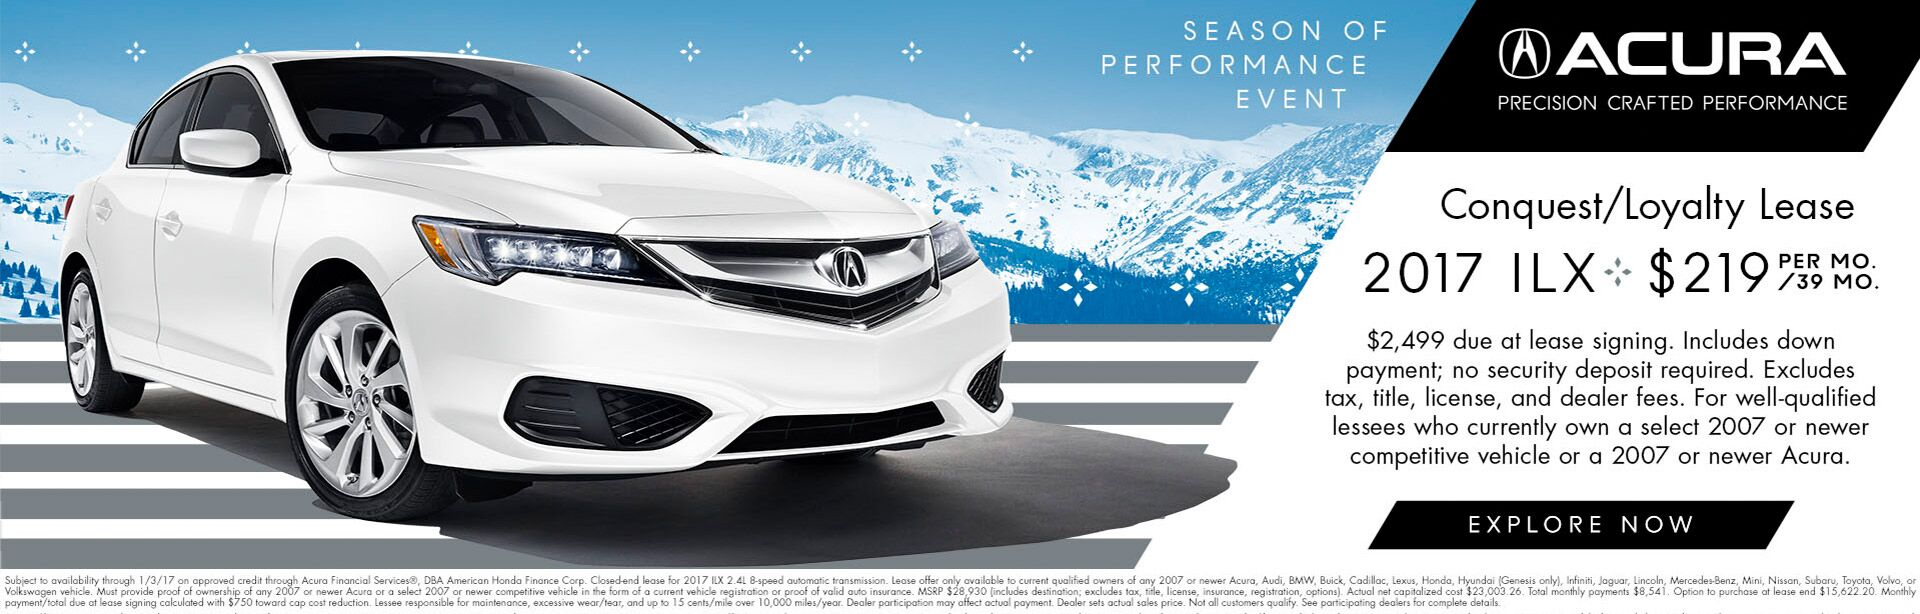 2017 ILX Conquest/Loyalty Lease 3